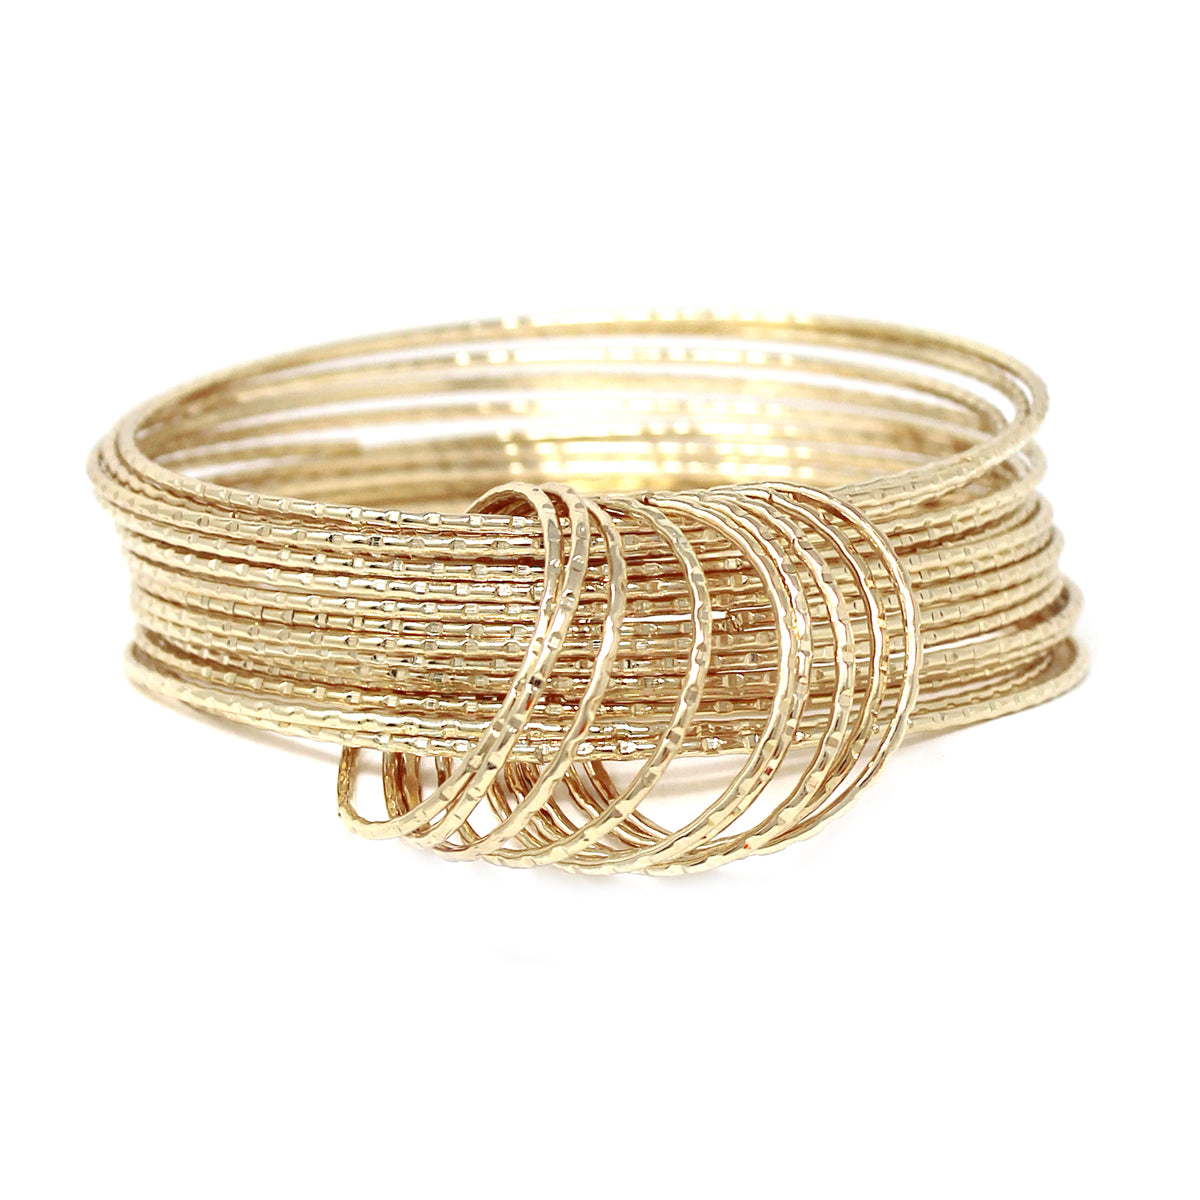 Ring Linked Textured Metal Multi Layered Bangle Bracelet